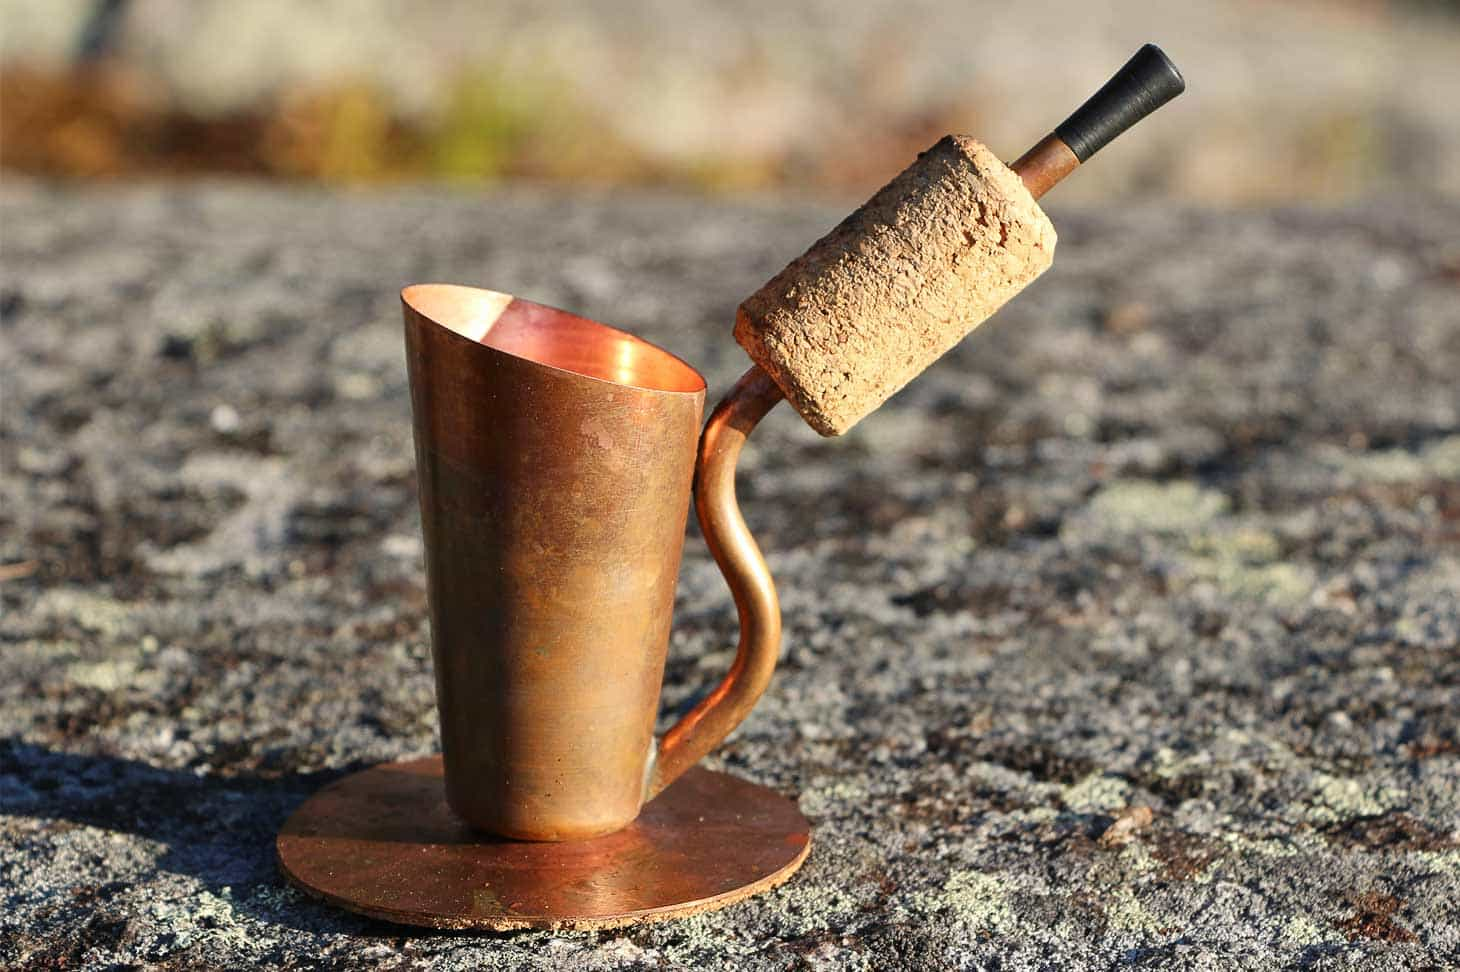 The Bripe Coffee Pipe - A Unique way to make espresso while camping or hiking